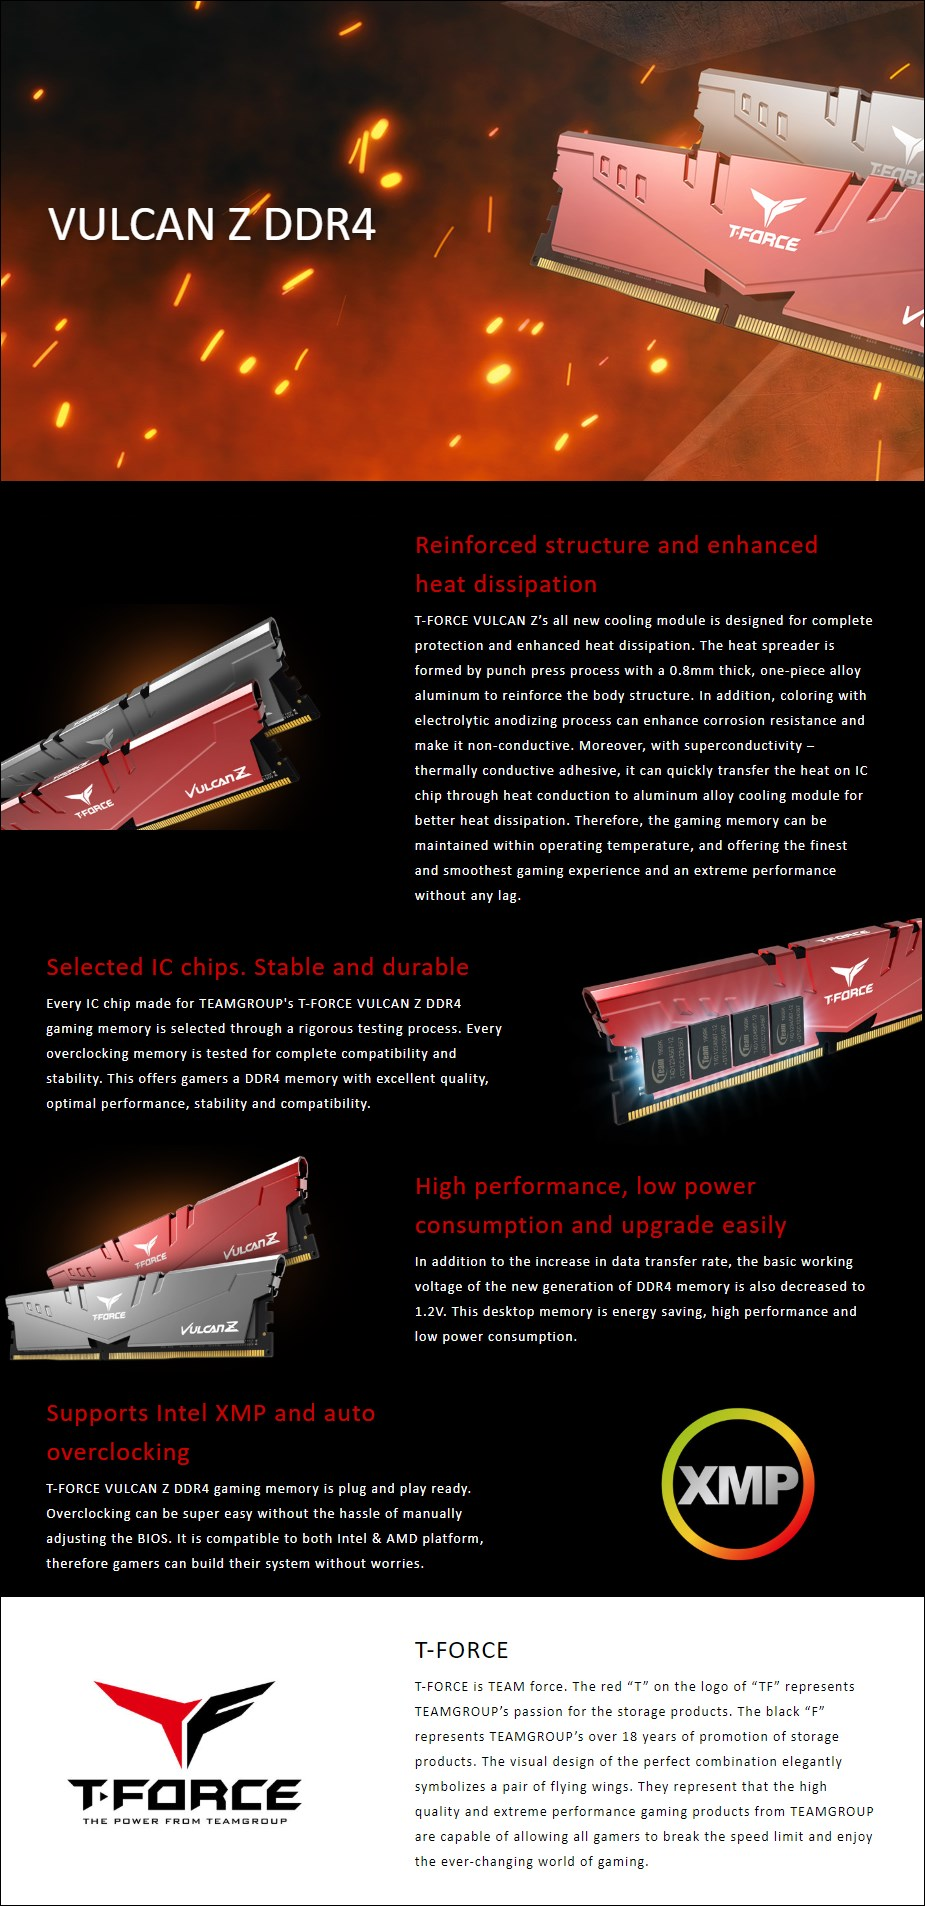 Team T-Force Vulcan Z 16GB (2x 8GB) DDR4 3200MHz Memory - Red - Overview 1